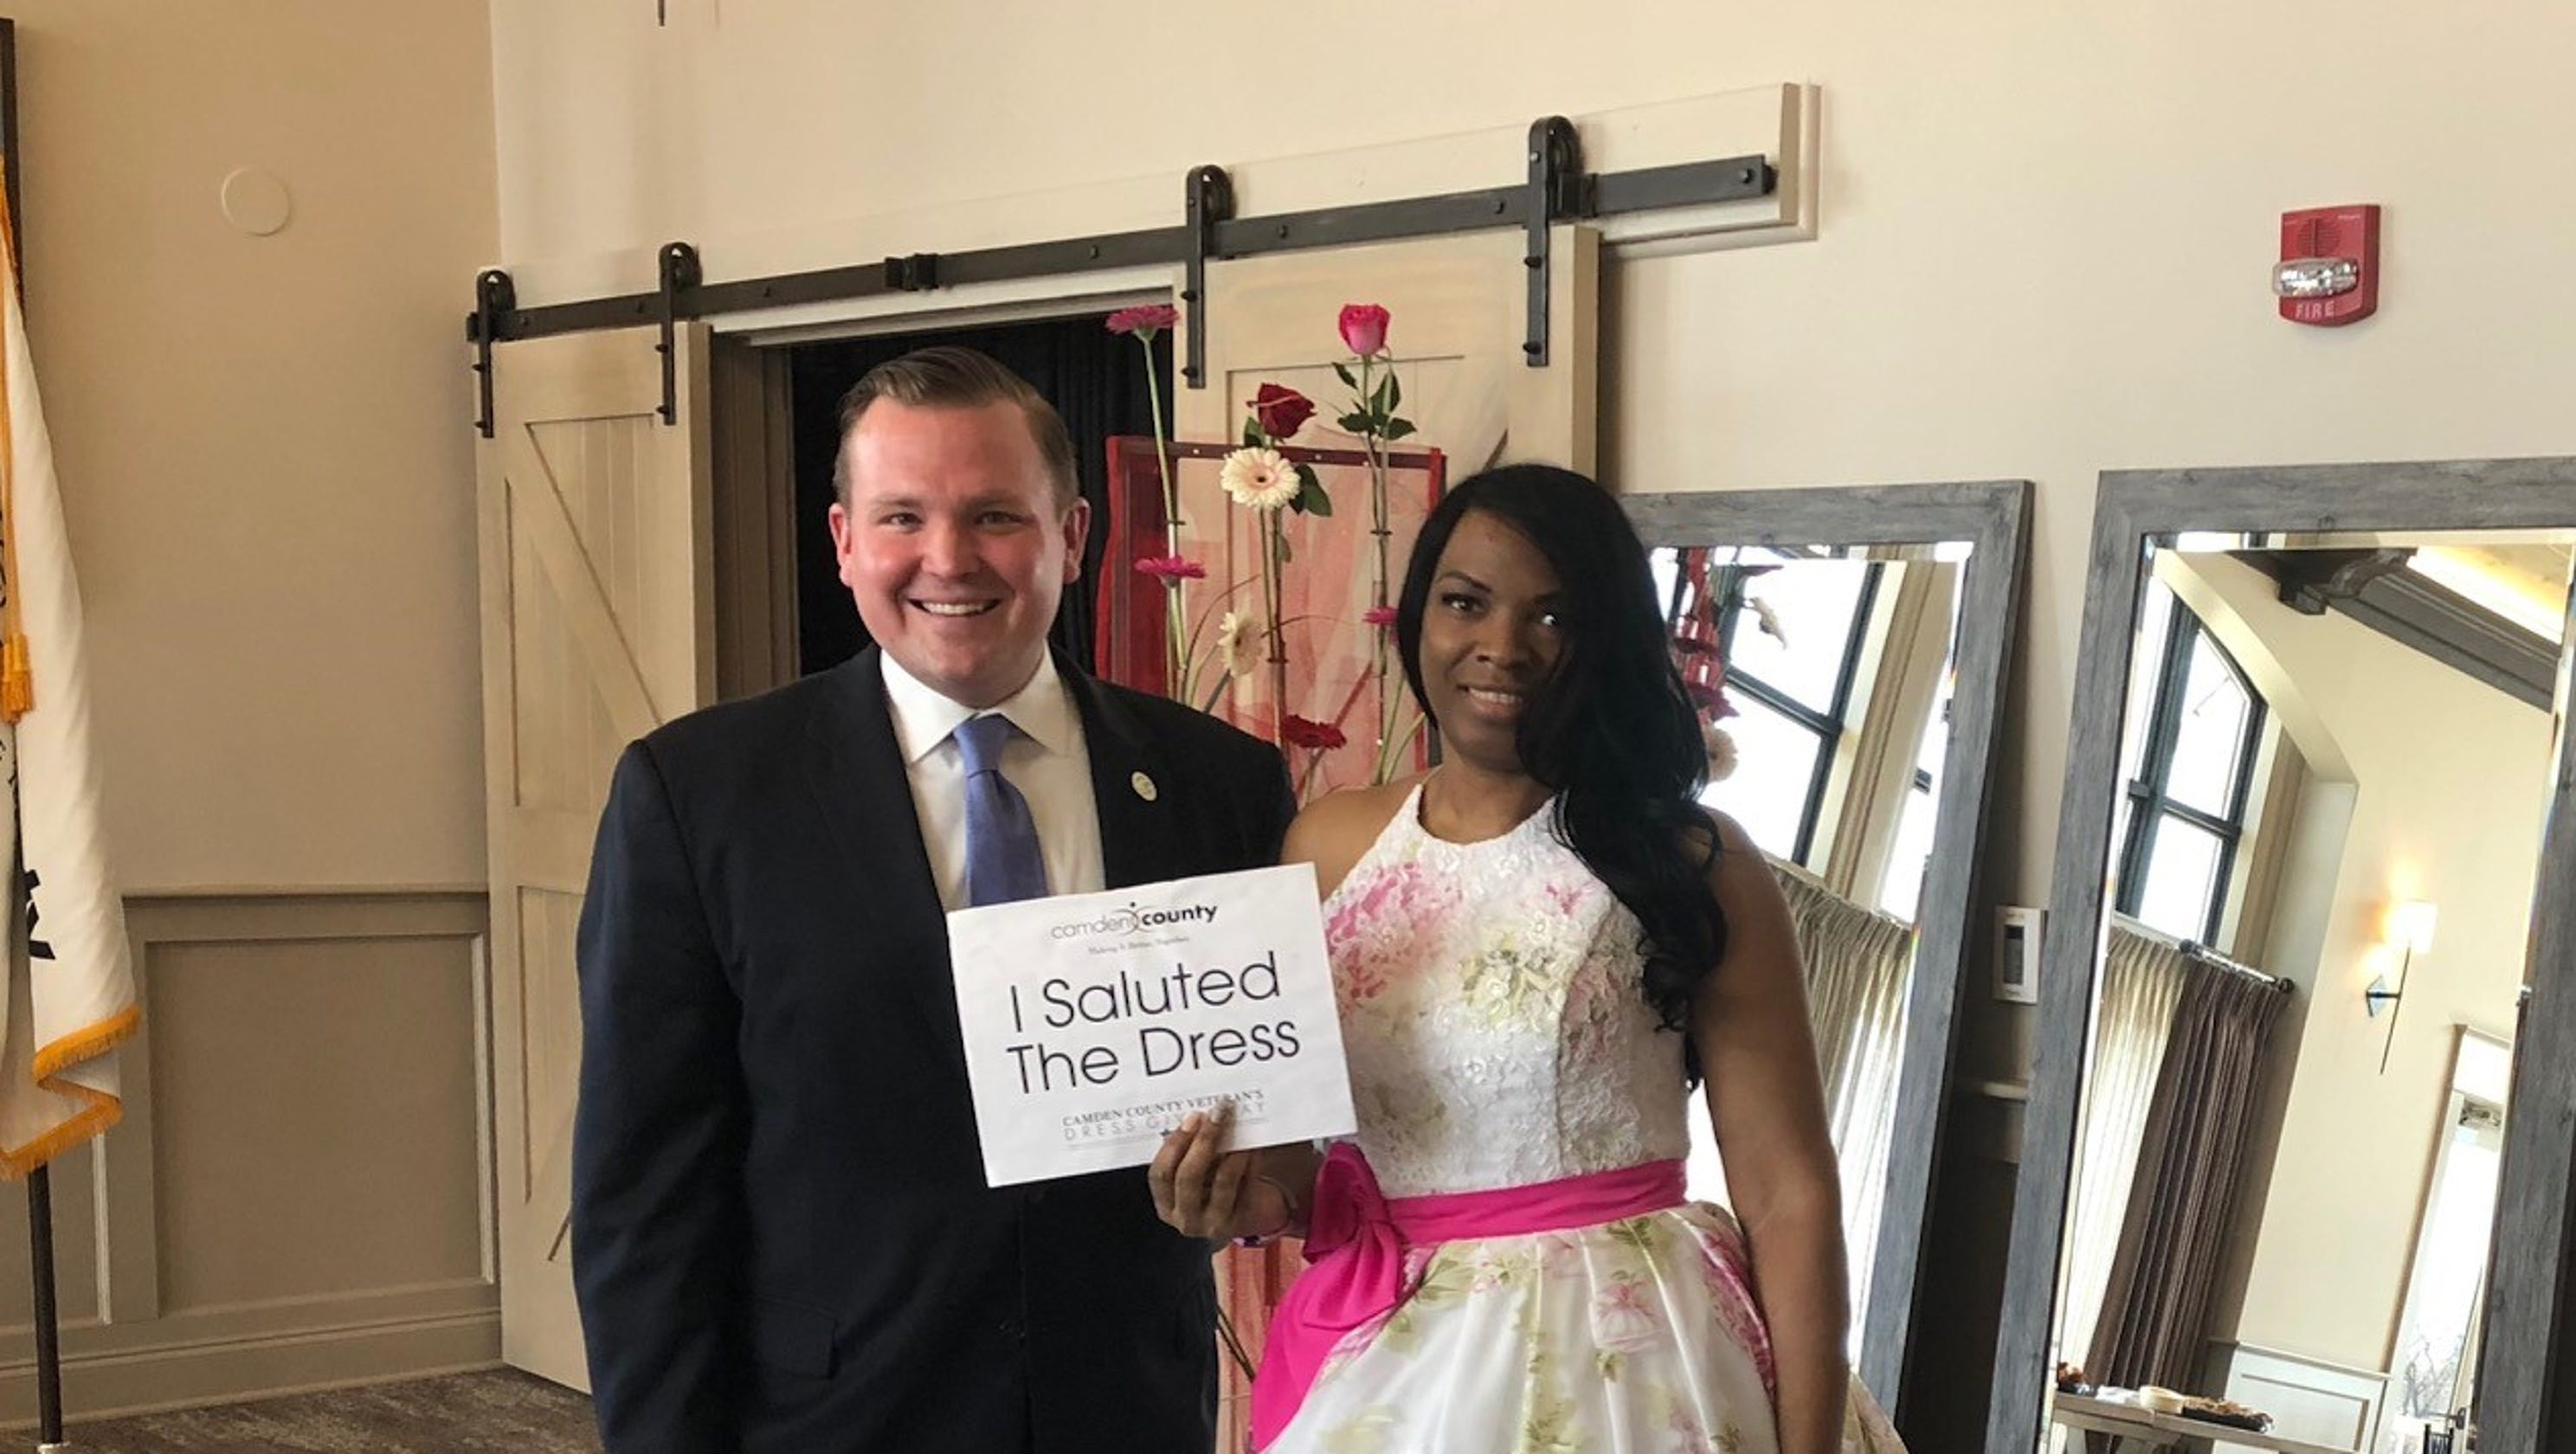 a6751a67a677 High-end bridal gowns from bankrupt store donated to brides with veteran  ties in Camden County